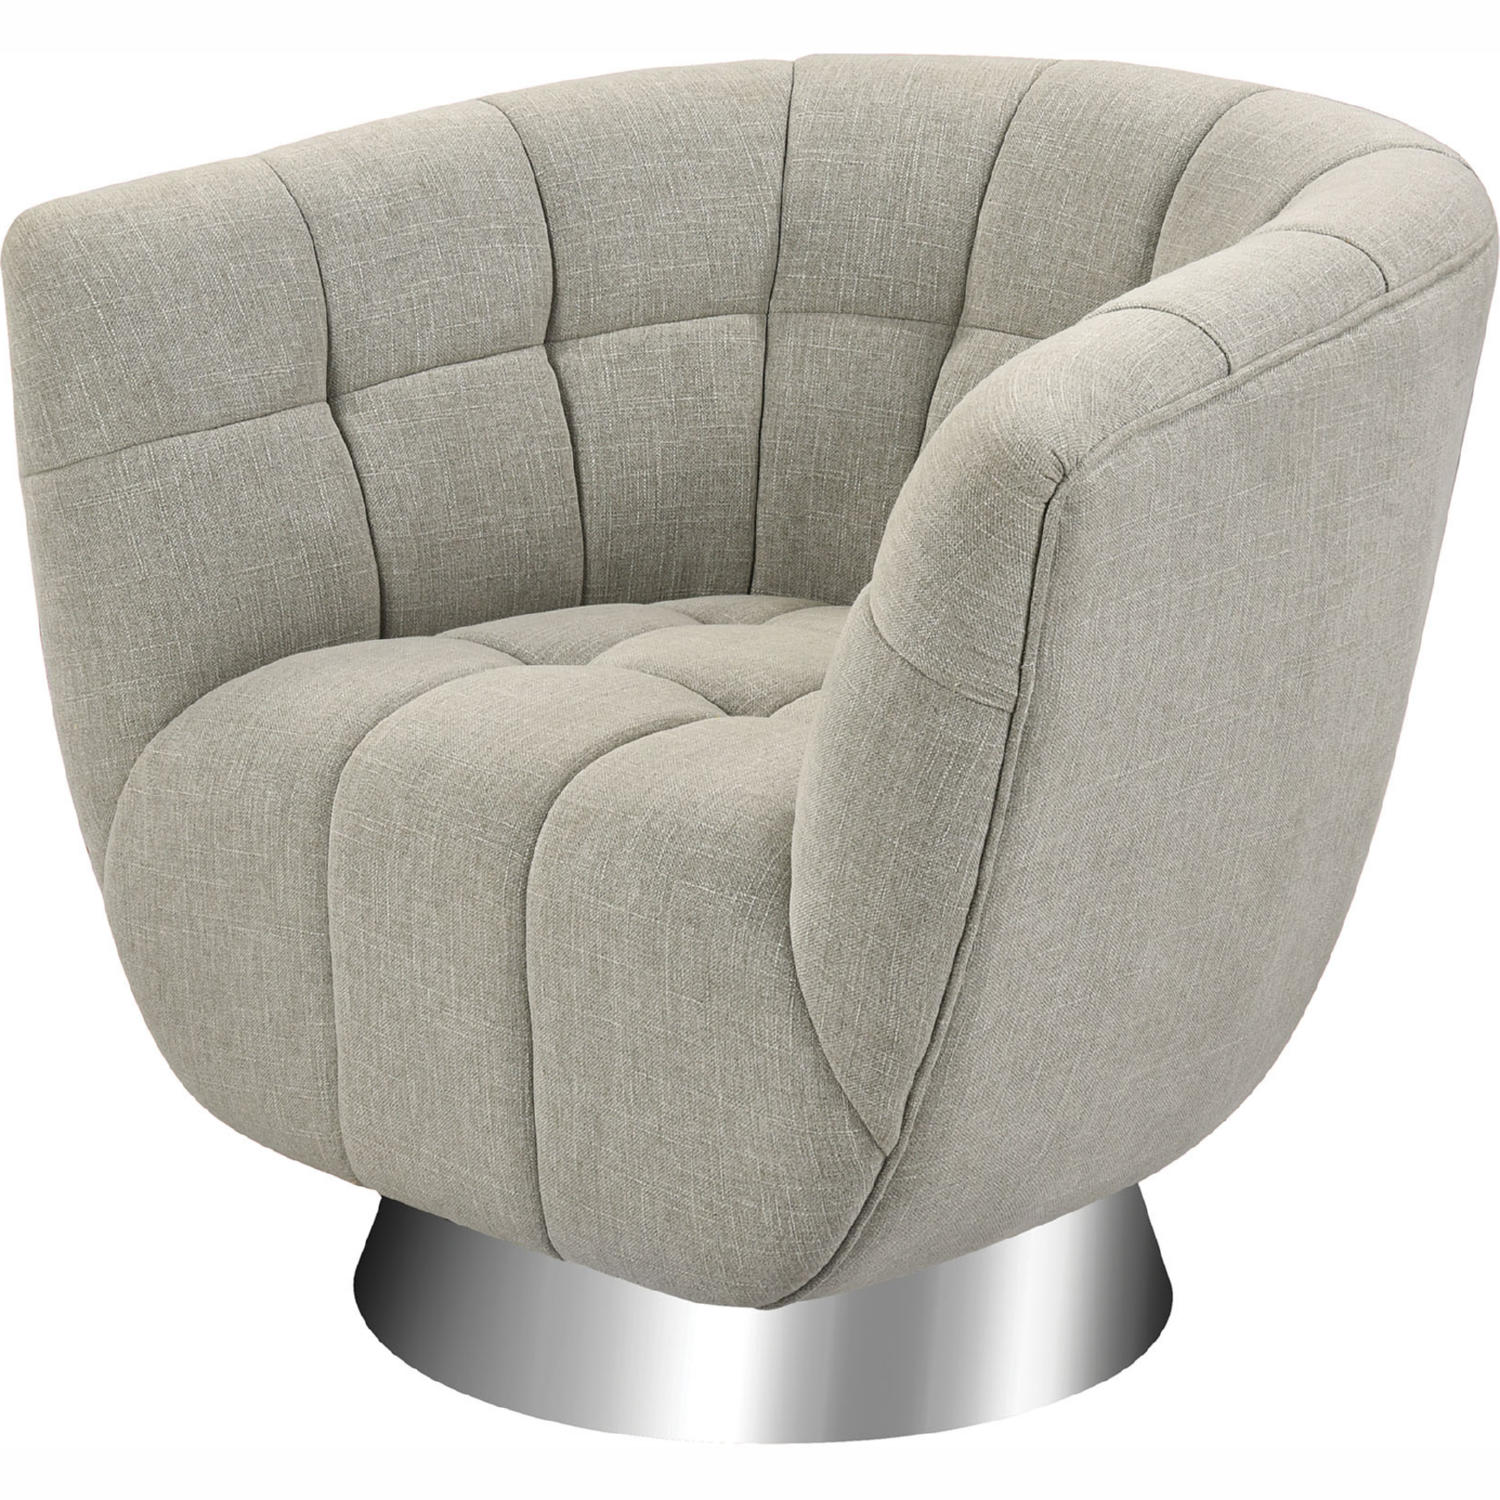 Miraculous Patrol Accent Chair In Grey Linen Stainless Steel By Elk Home Ibusinesslaw Wood Chair Design Ideas Ibusinesslaworg